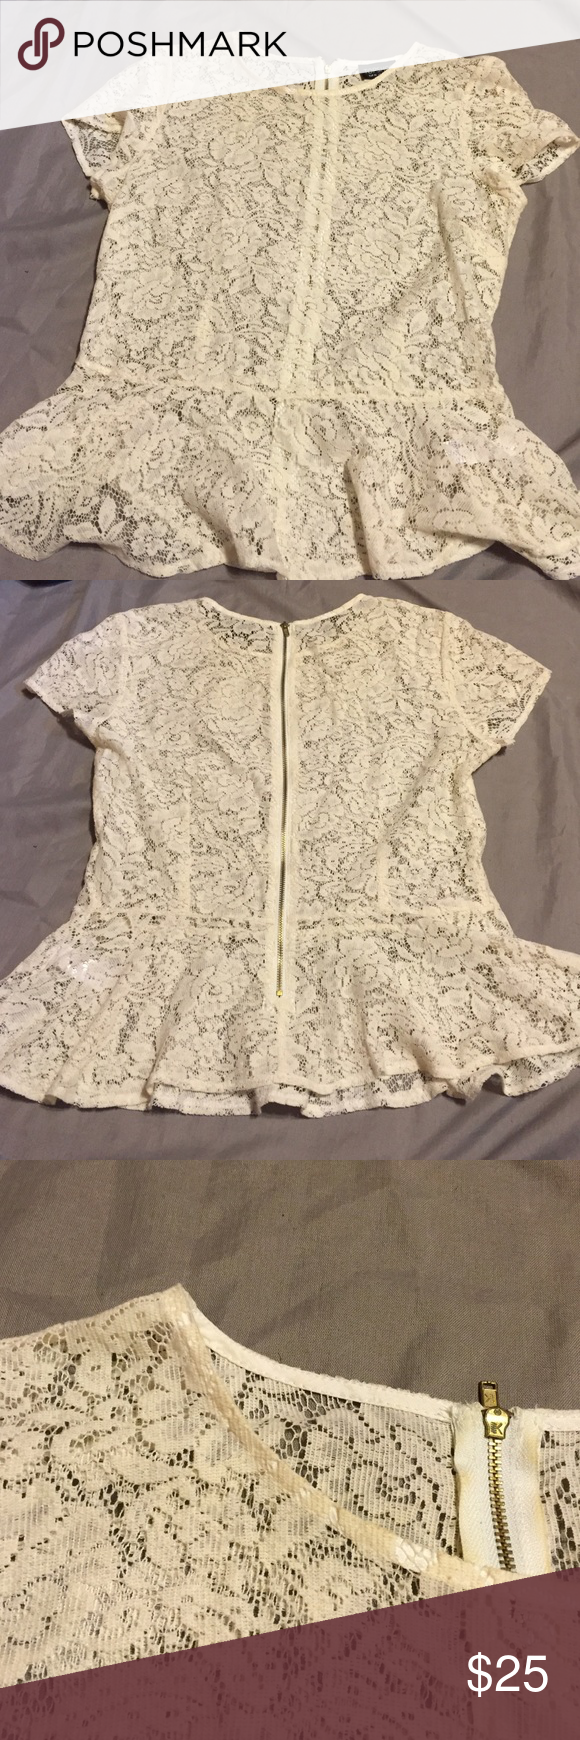 TOPSHOP lace peplum top! TOPSHOP lace peplum top. Zipper detail all the way down the back. Neckline is dirty as shown in pictures, I'm too scared to wash lace! Open to offers using the offer button! Topshop Tops